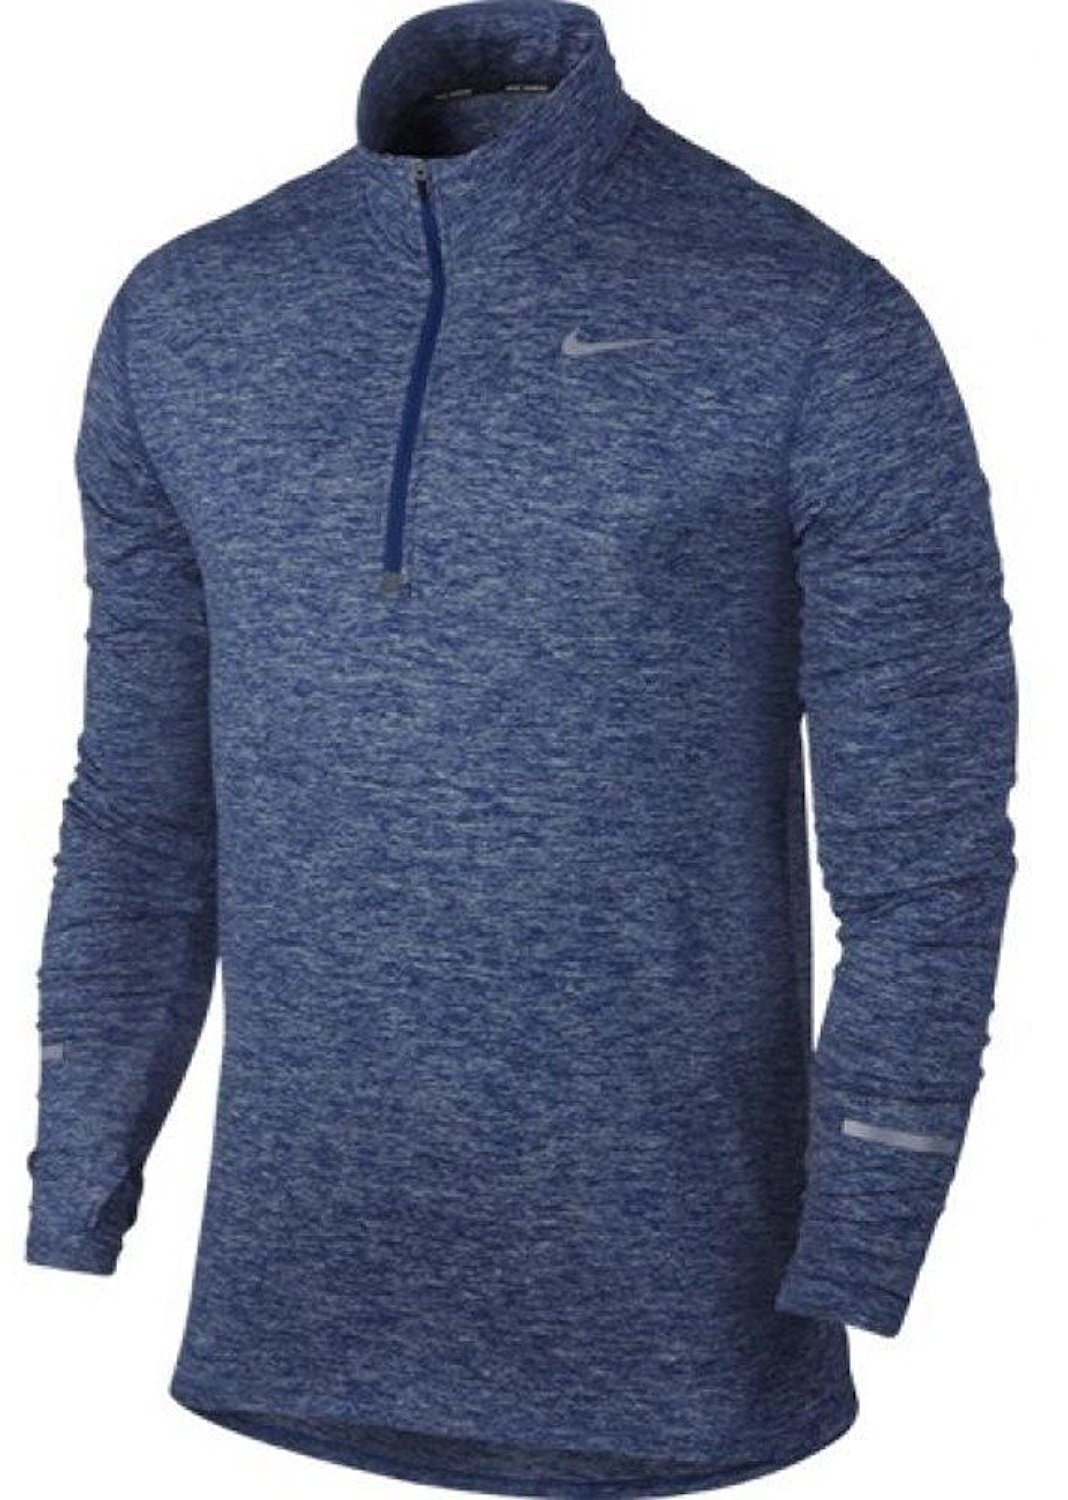 NIKE Men's Dry Element Running Top B014TIHD9E Large|Deep Royal Blue/Heather/Deep Royal Blue